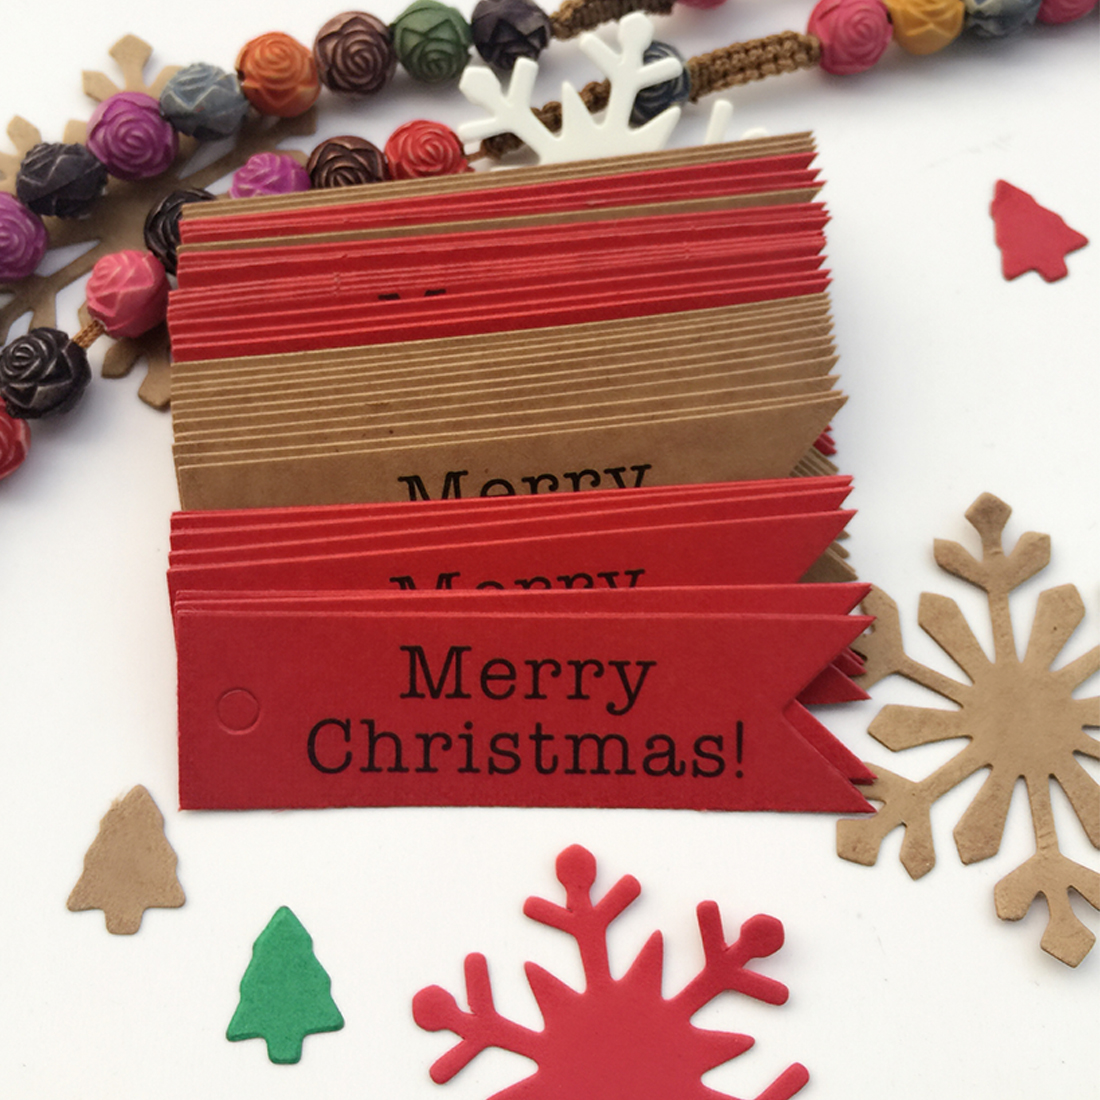 Sale Wholesale 100pcs Decorative Merry Christmas Paper Gift Tags Label Hanging Cards DIY Home Party Christmas Accessories